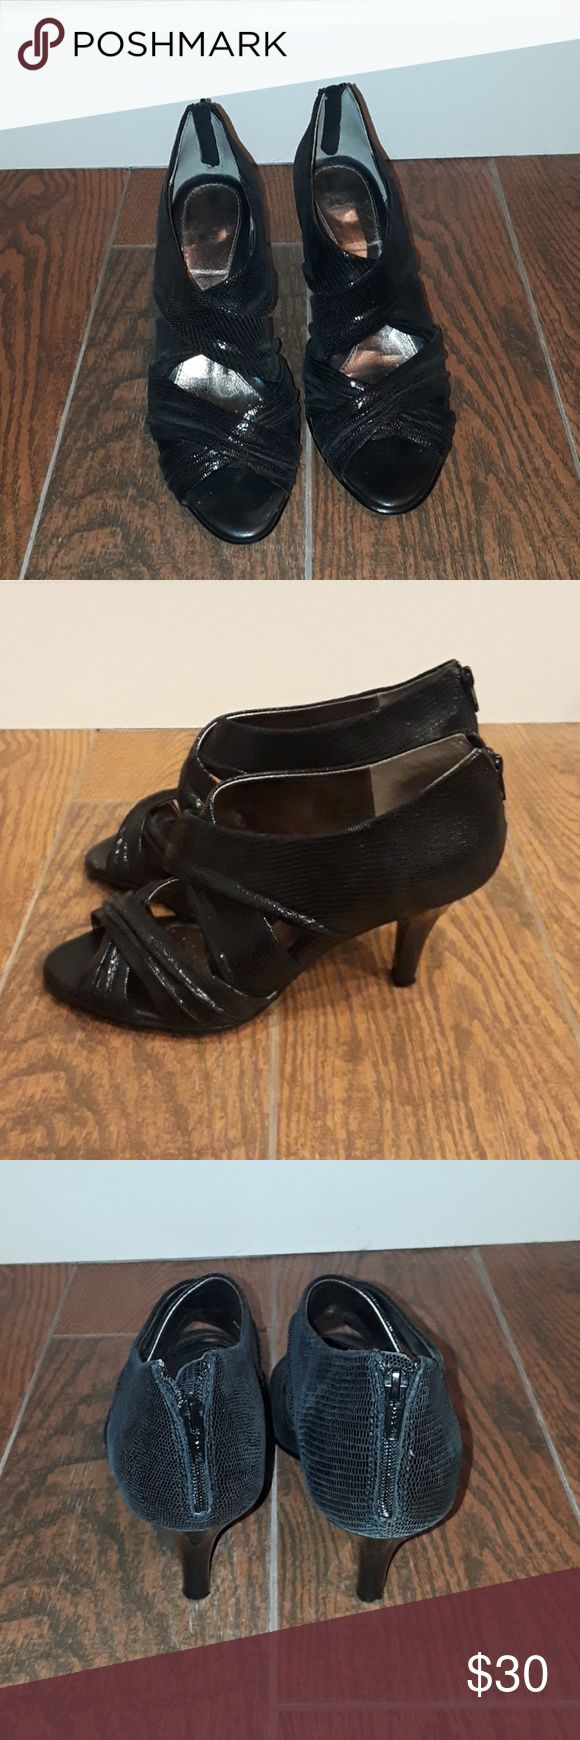 Sofft heels Size 8 black heels in EUC by Sofft Sofft Shoes Heels